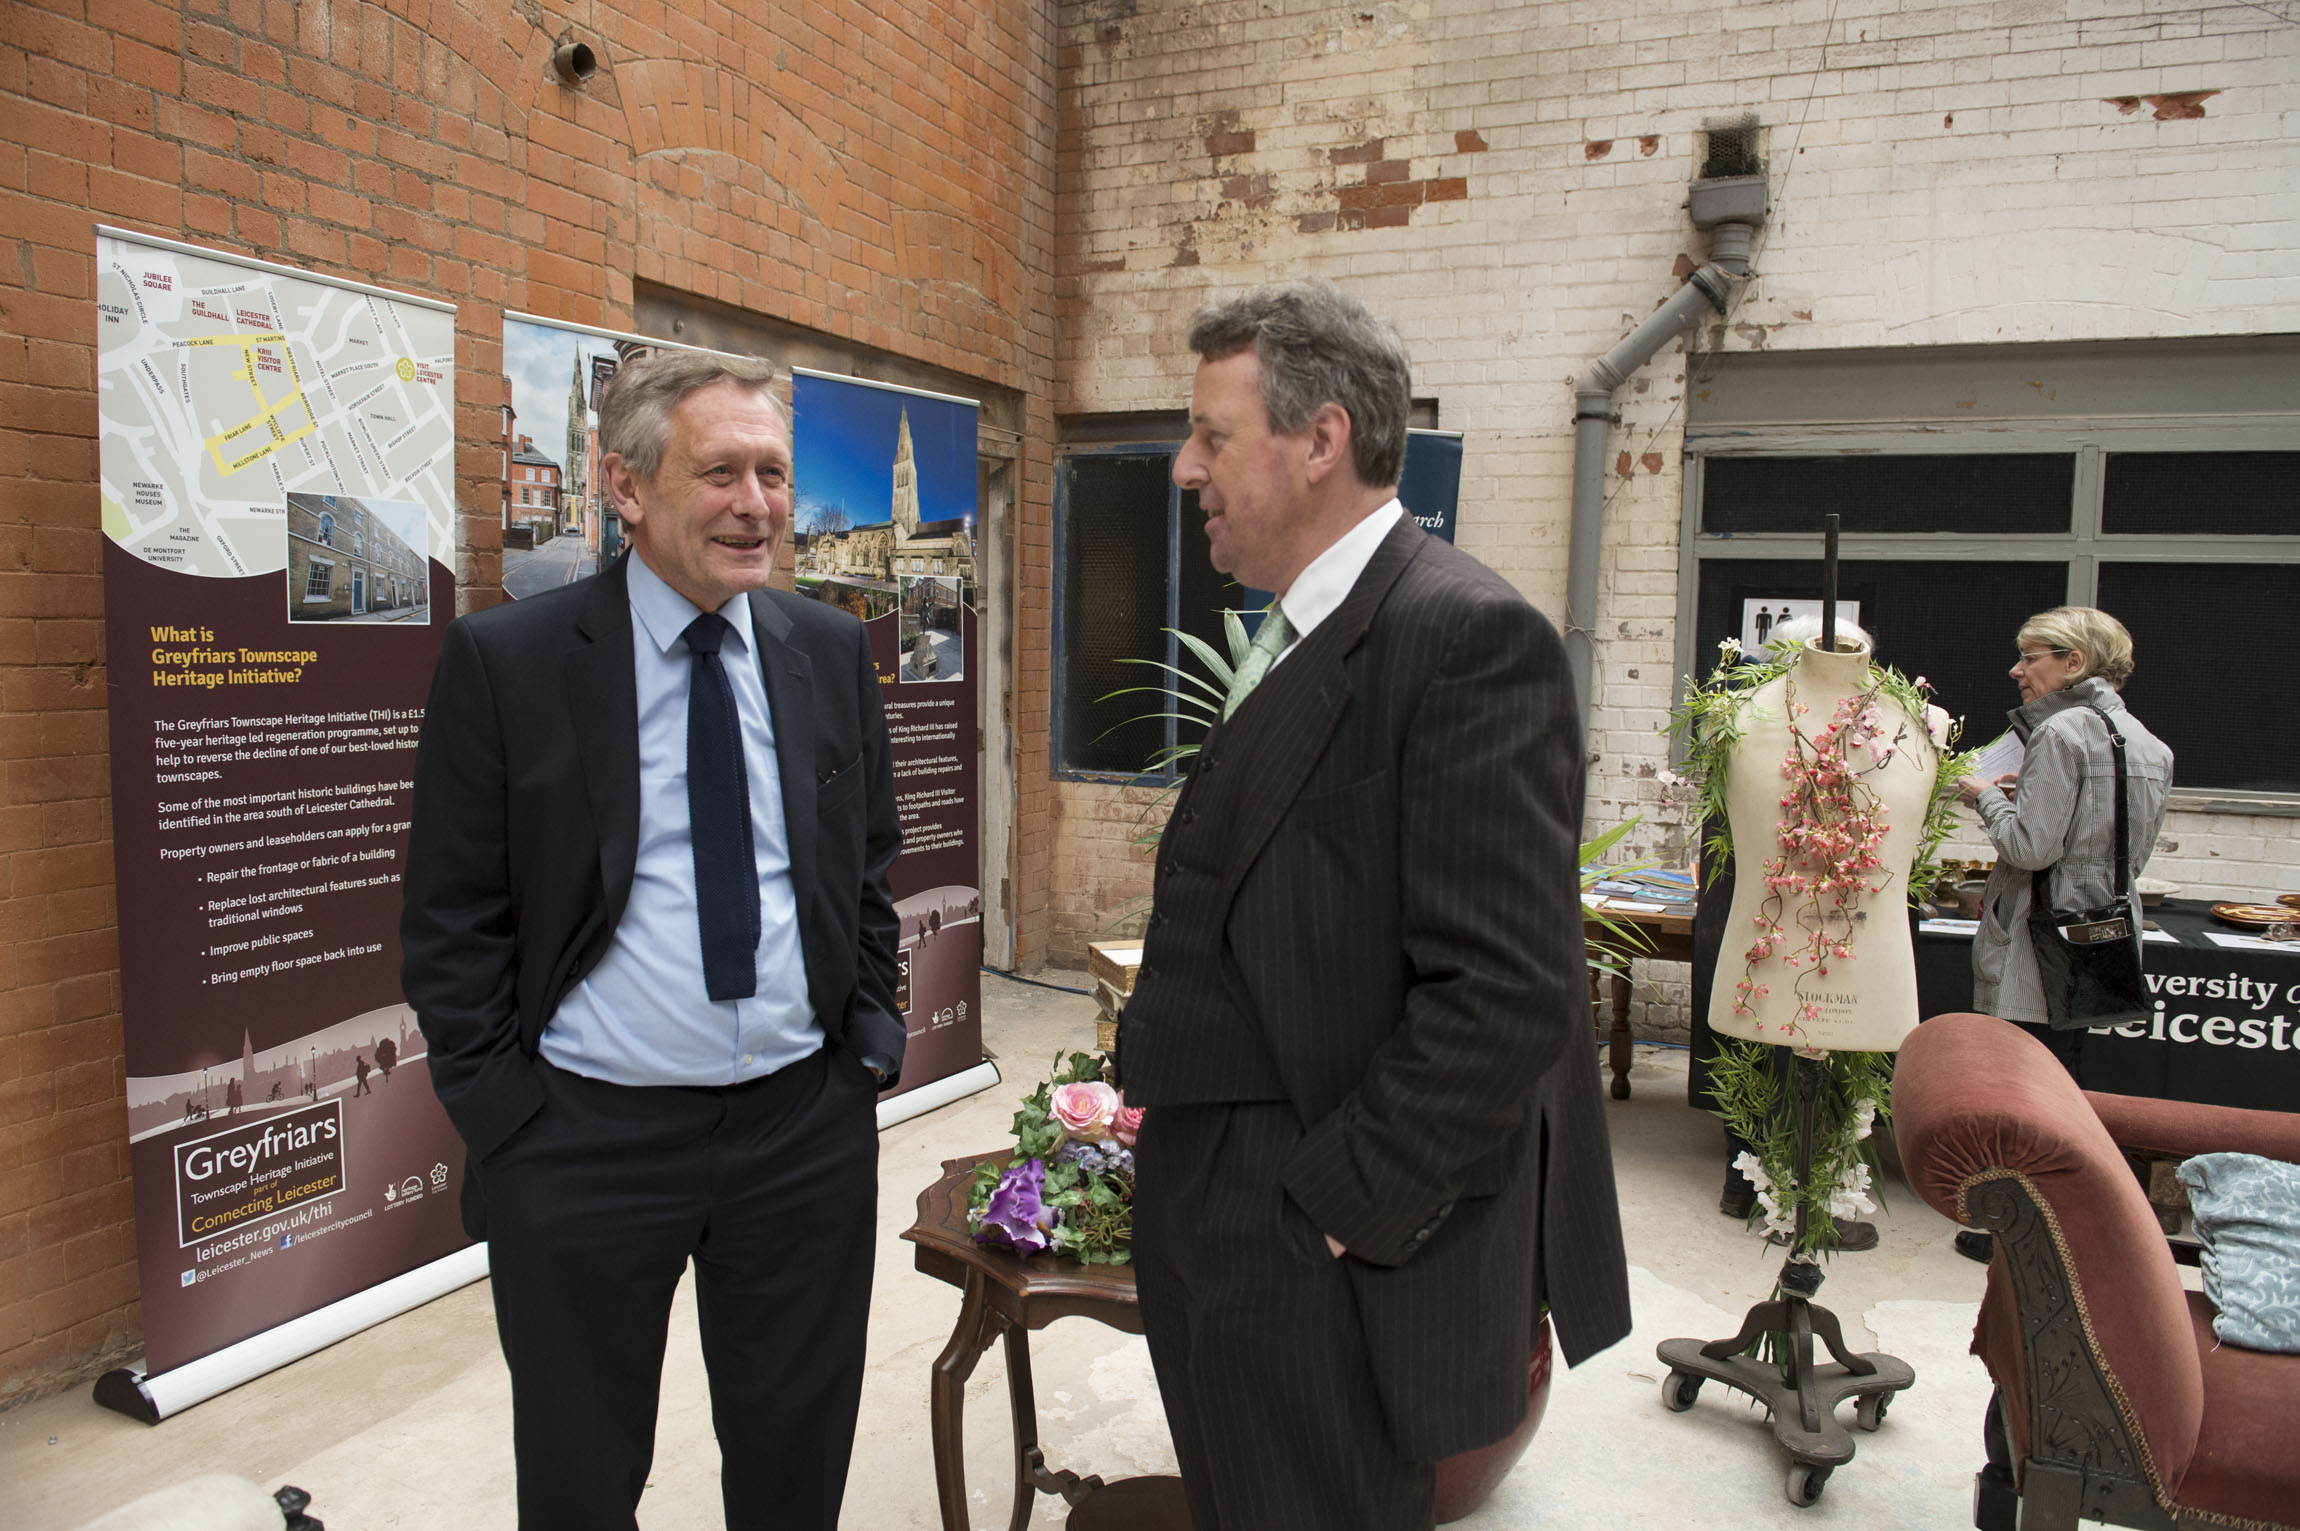 The Leicester Greyfriars Launch Event